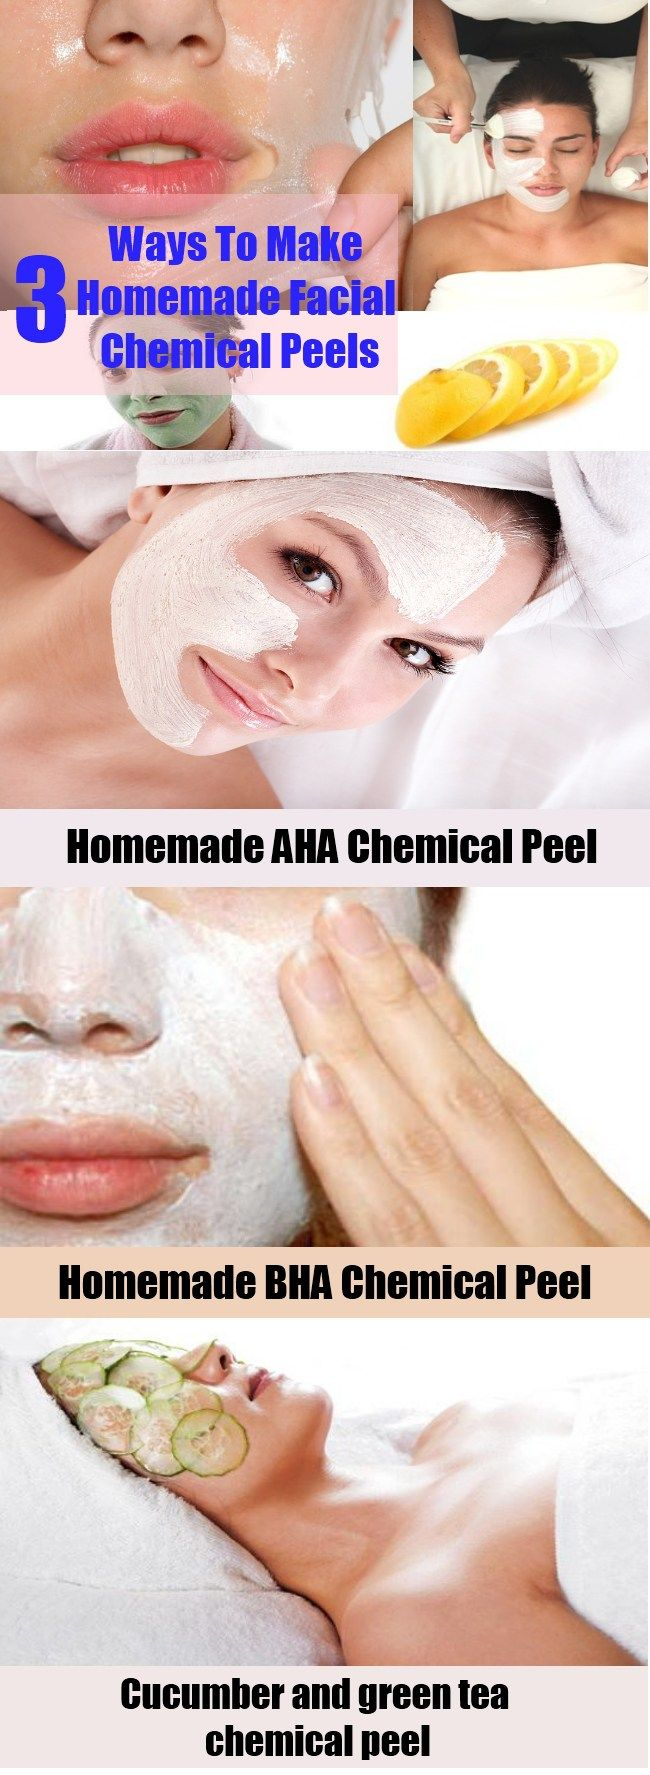 Ways To Make Homemade Facial Chemical Peels